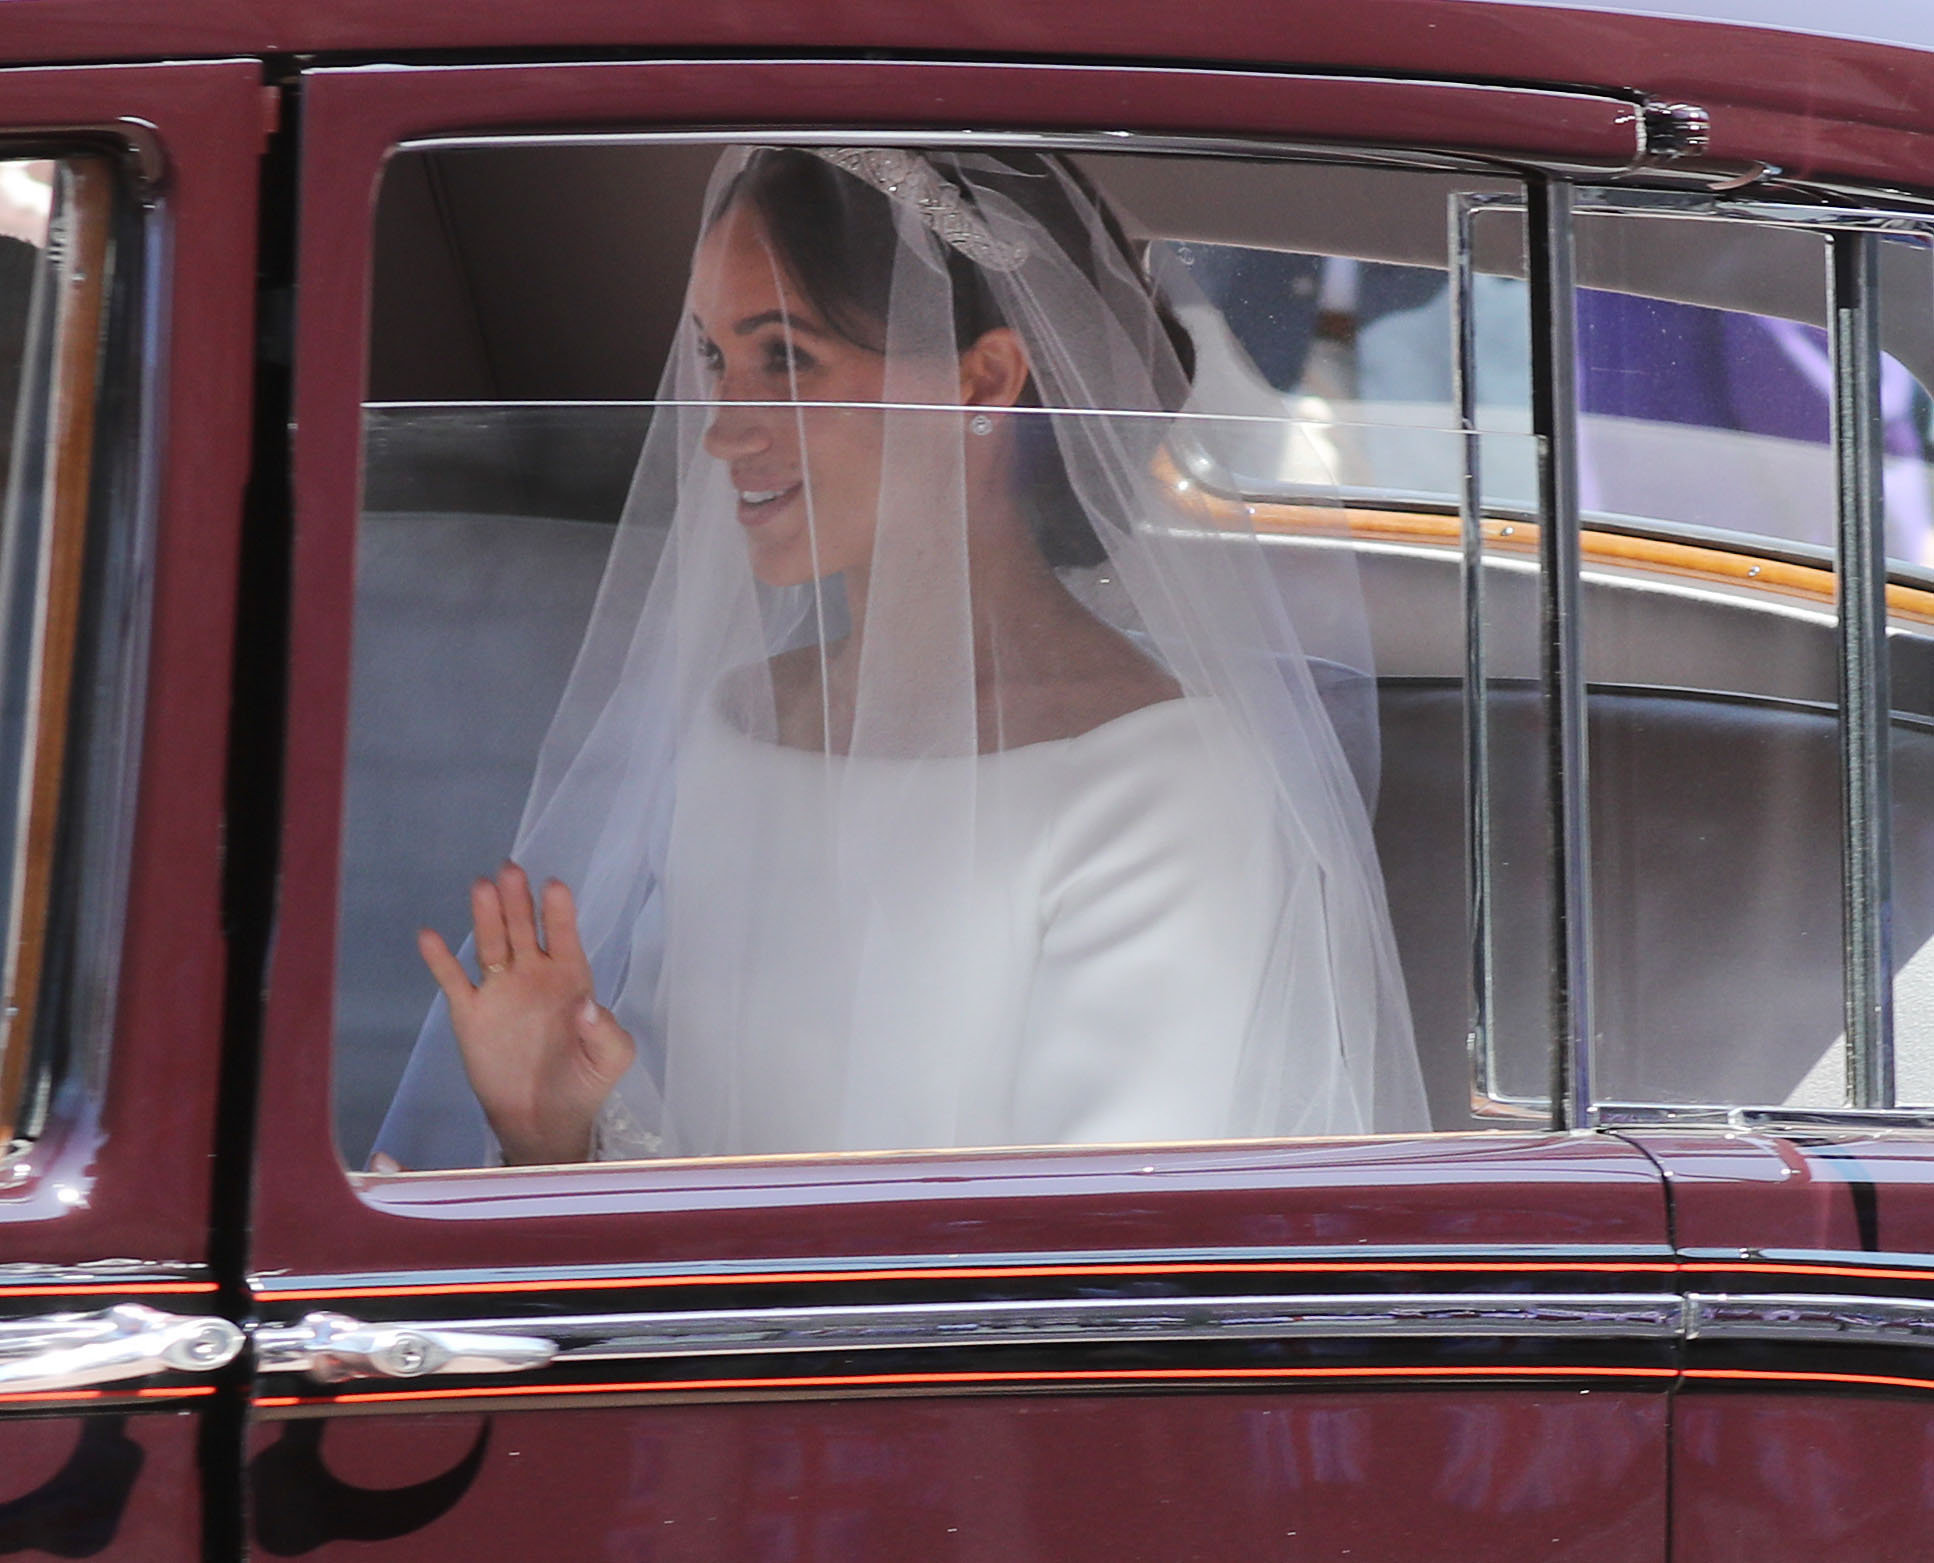 Meghan Markle arrives at St George's Chapel in Windsor Castle for her royal wedding ceremony to Prince Harry